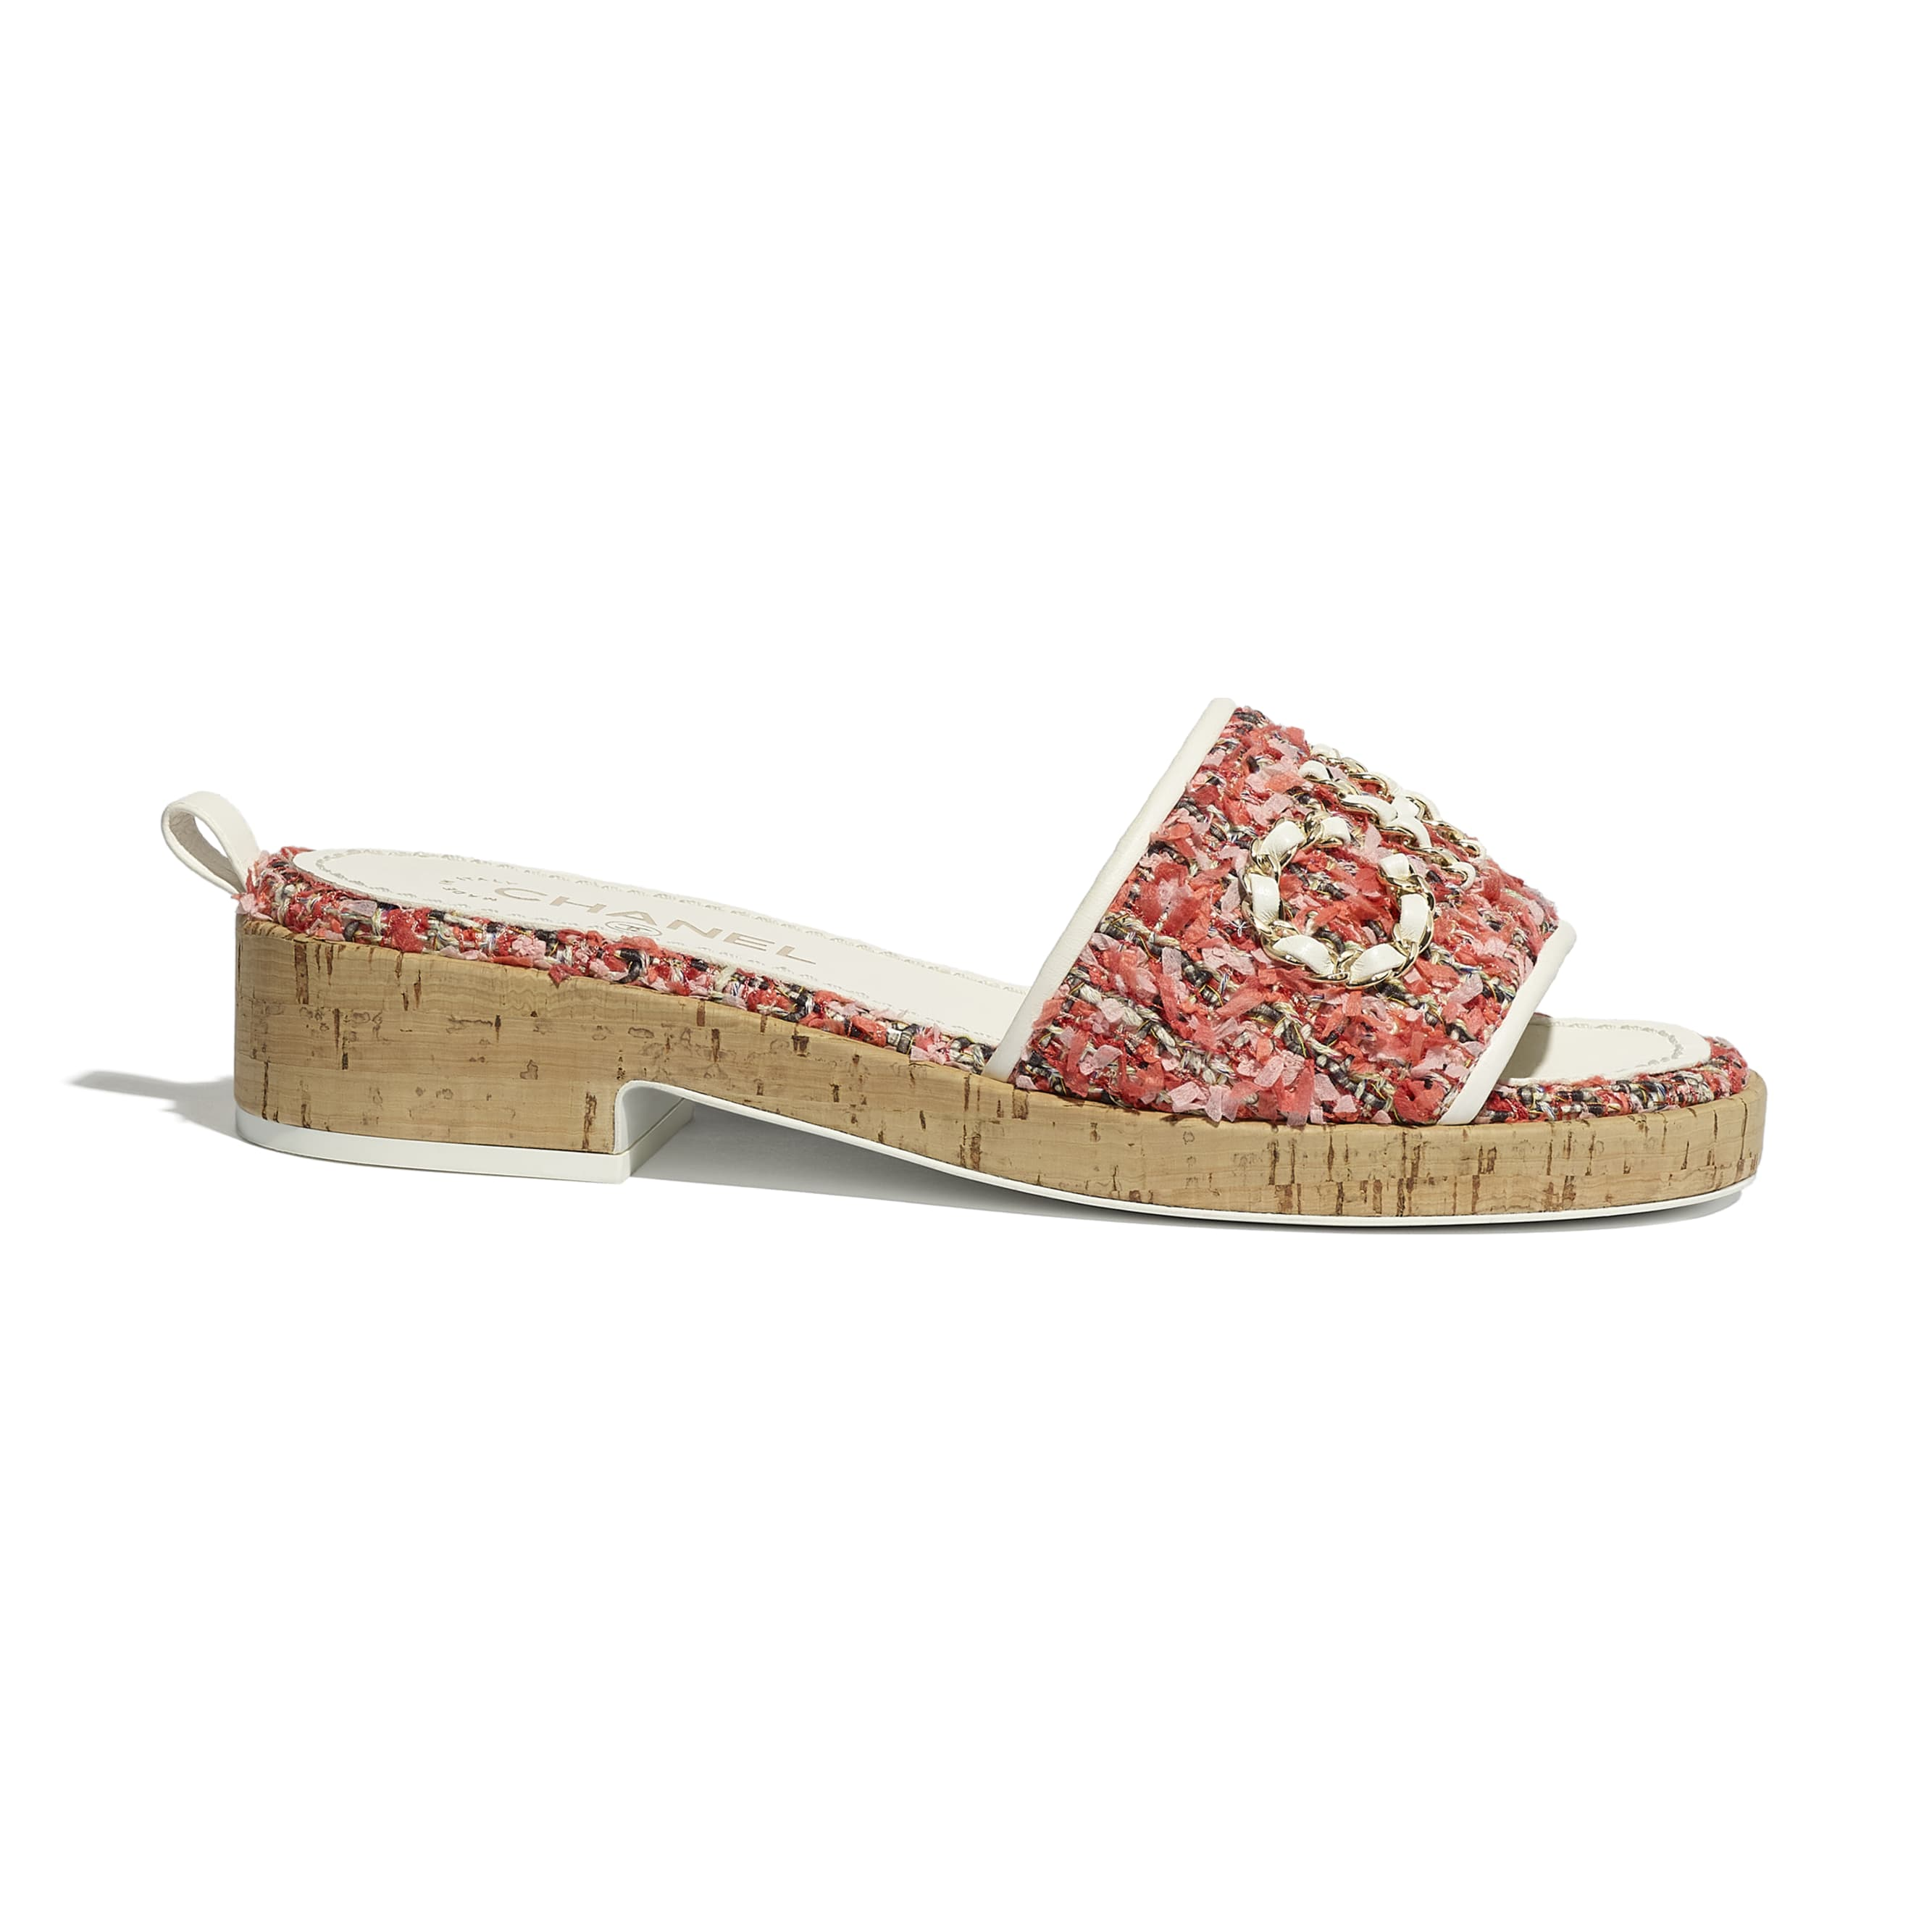 Mules - Coral, Red & Pink - Tweed - CHANEL - Default view - see standard sized version